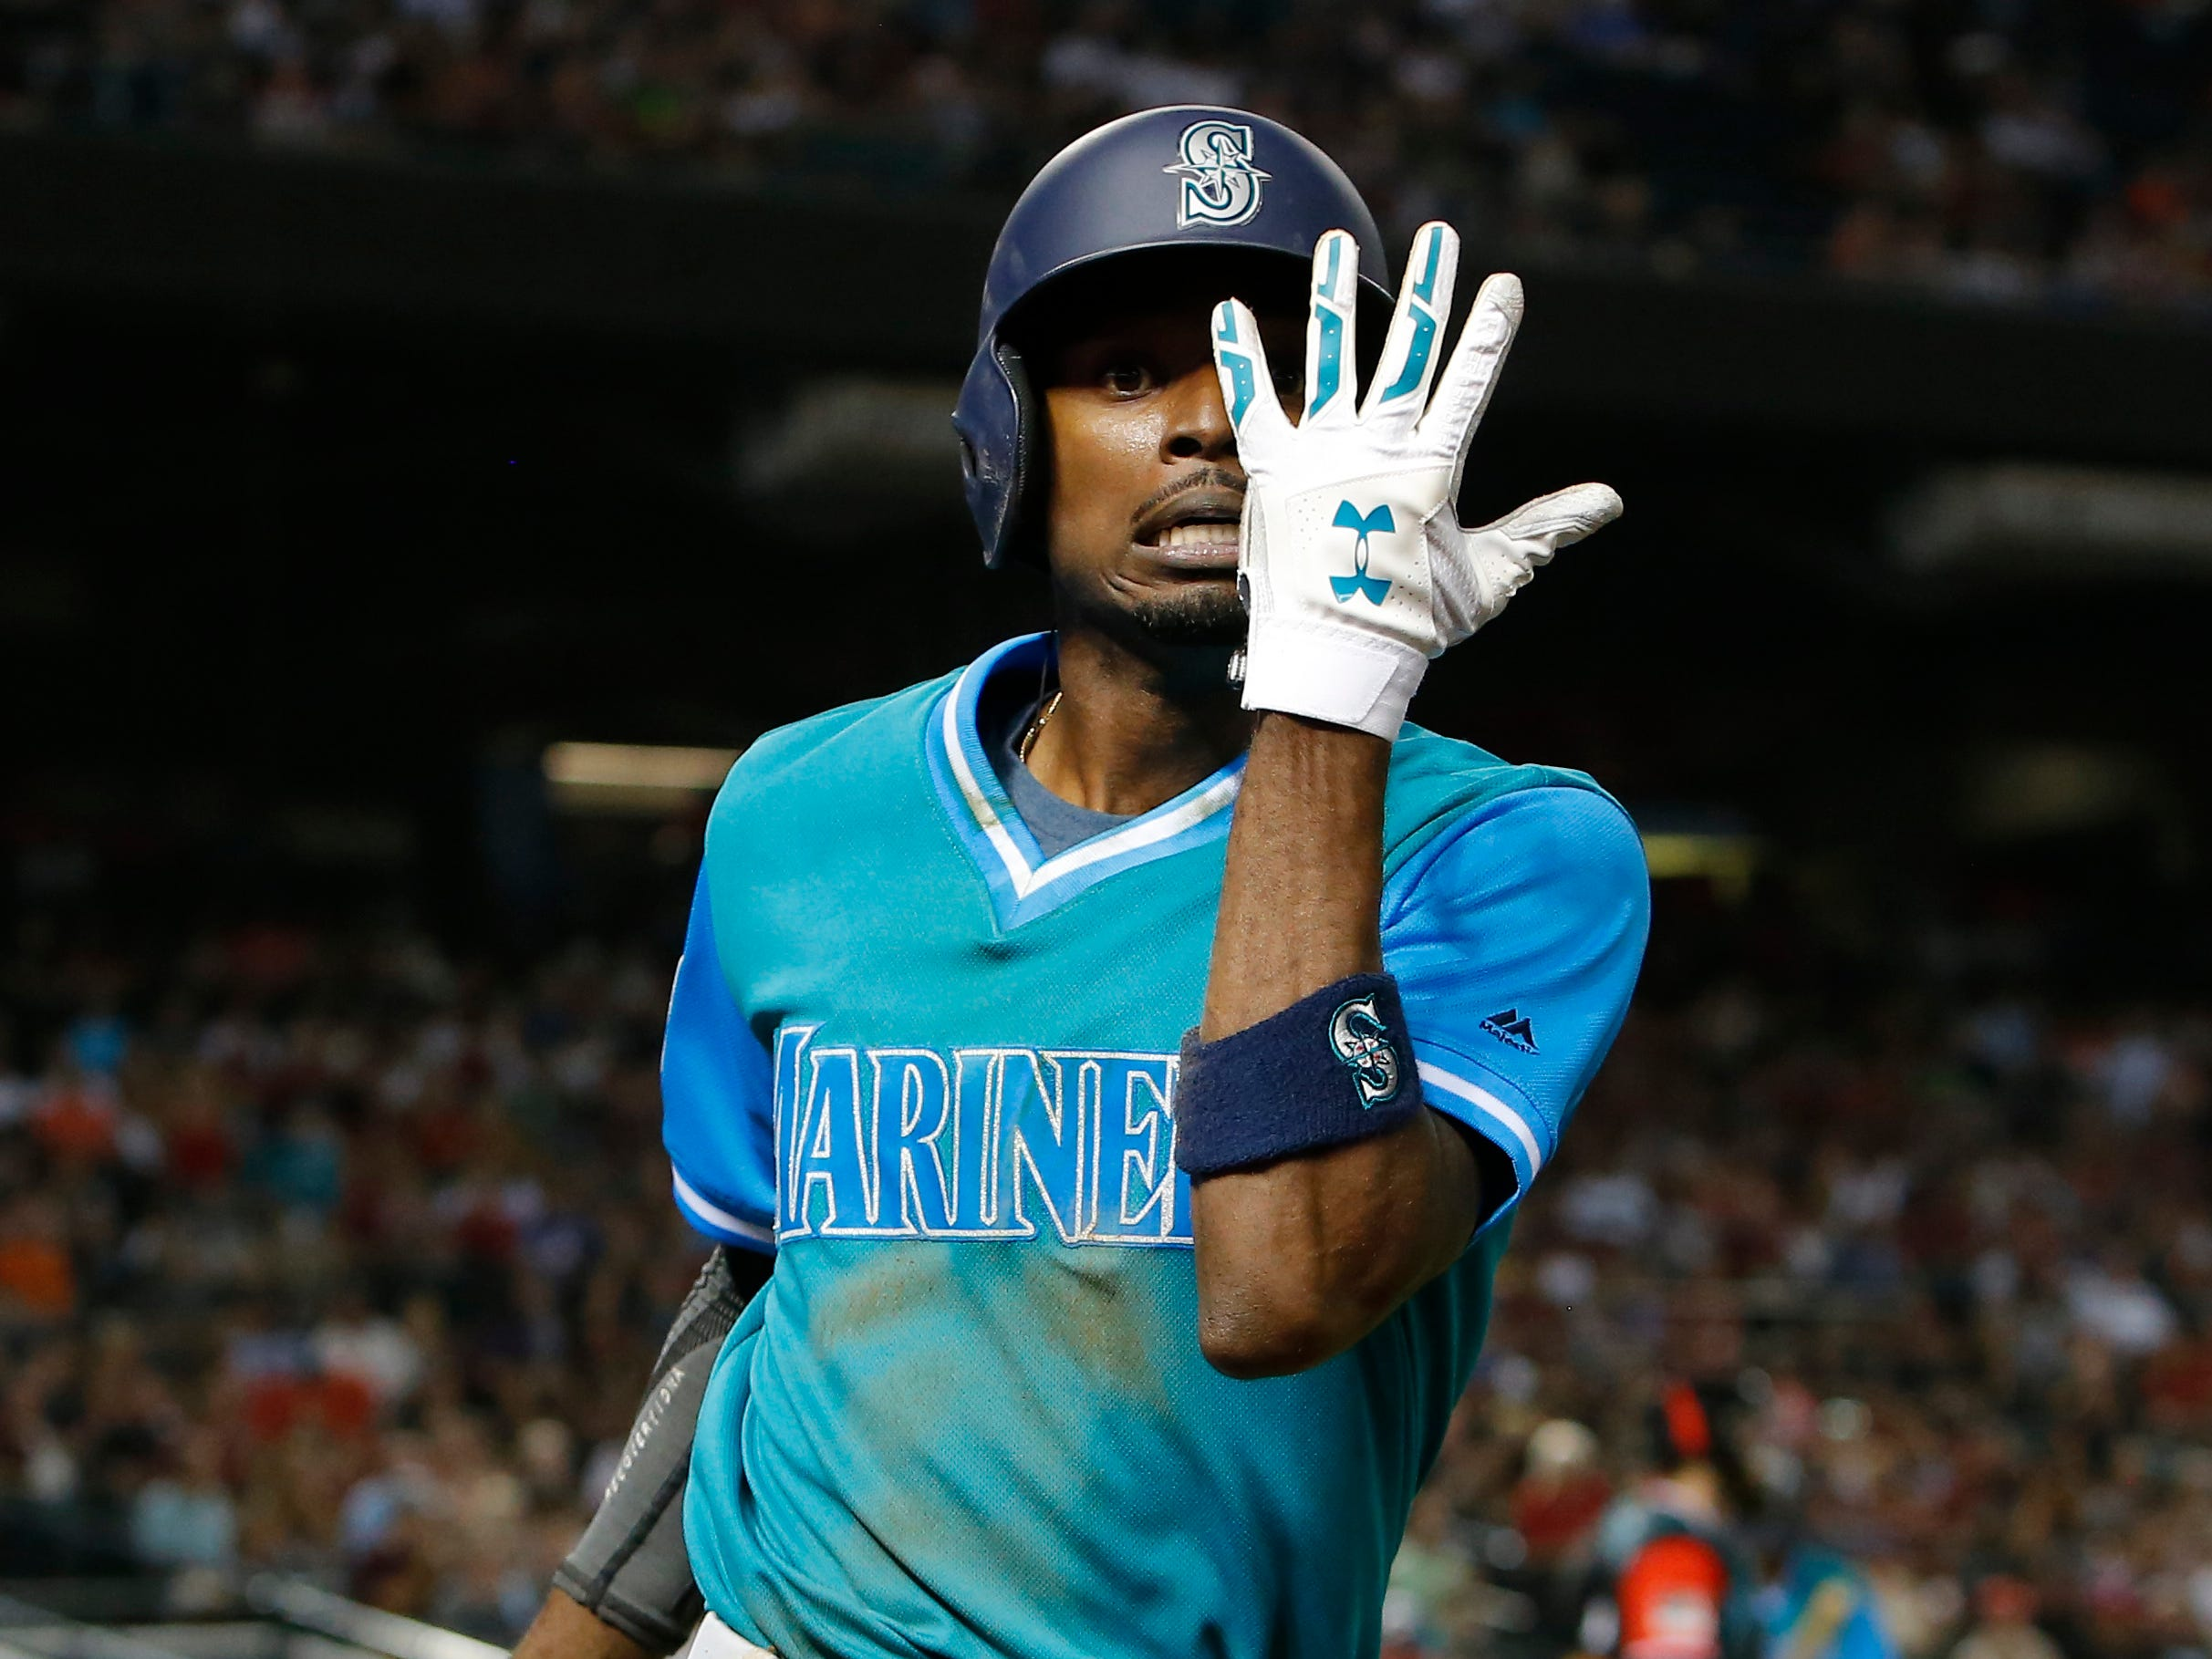 Seattle Mariners Dee Gordon celebrates after scoring on a throwing error by Arizona Diamondbacks pitcher Zack Godley after stealing thirdbase in the third inning during a baseball game, Friday, Aug. 24, 2018, in Phoenix.